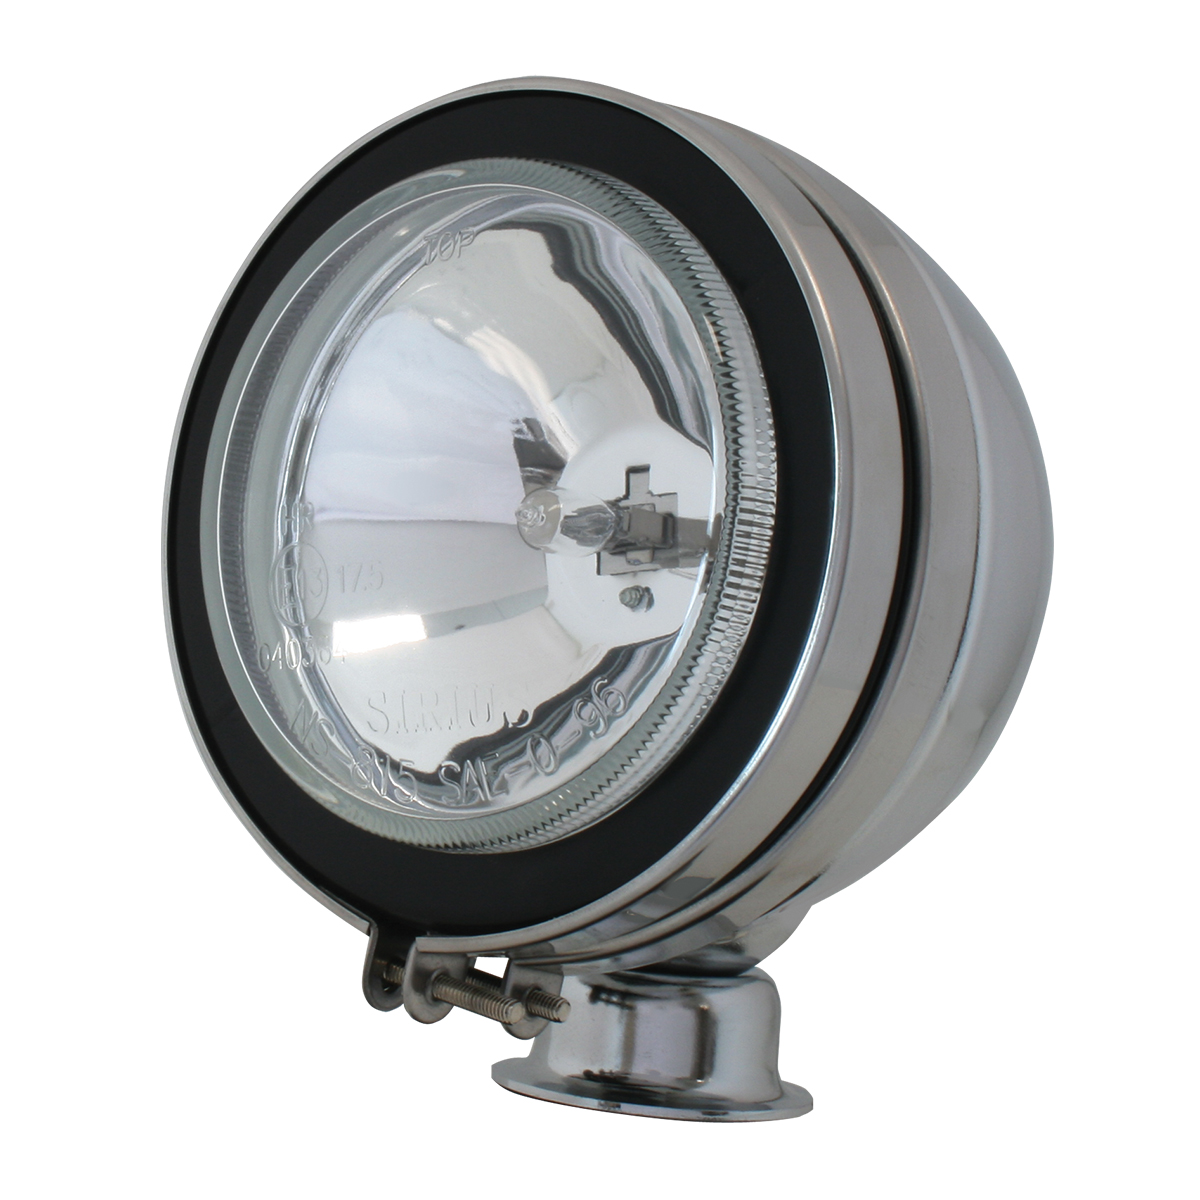 "#80630 5"" Chrome Plated Off-Road Light 55 watts - Clear"